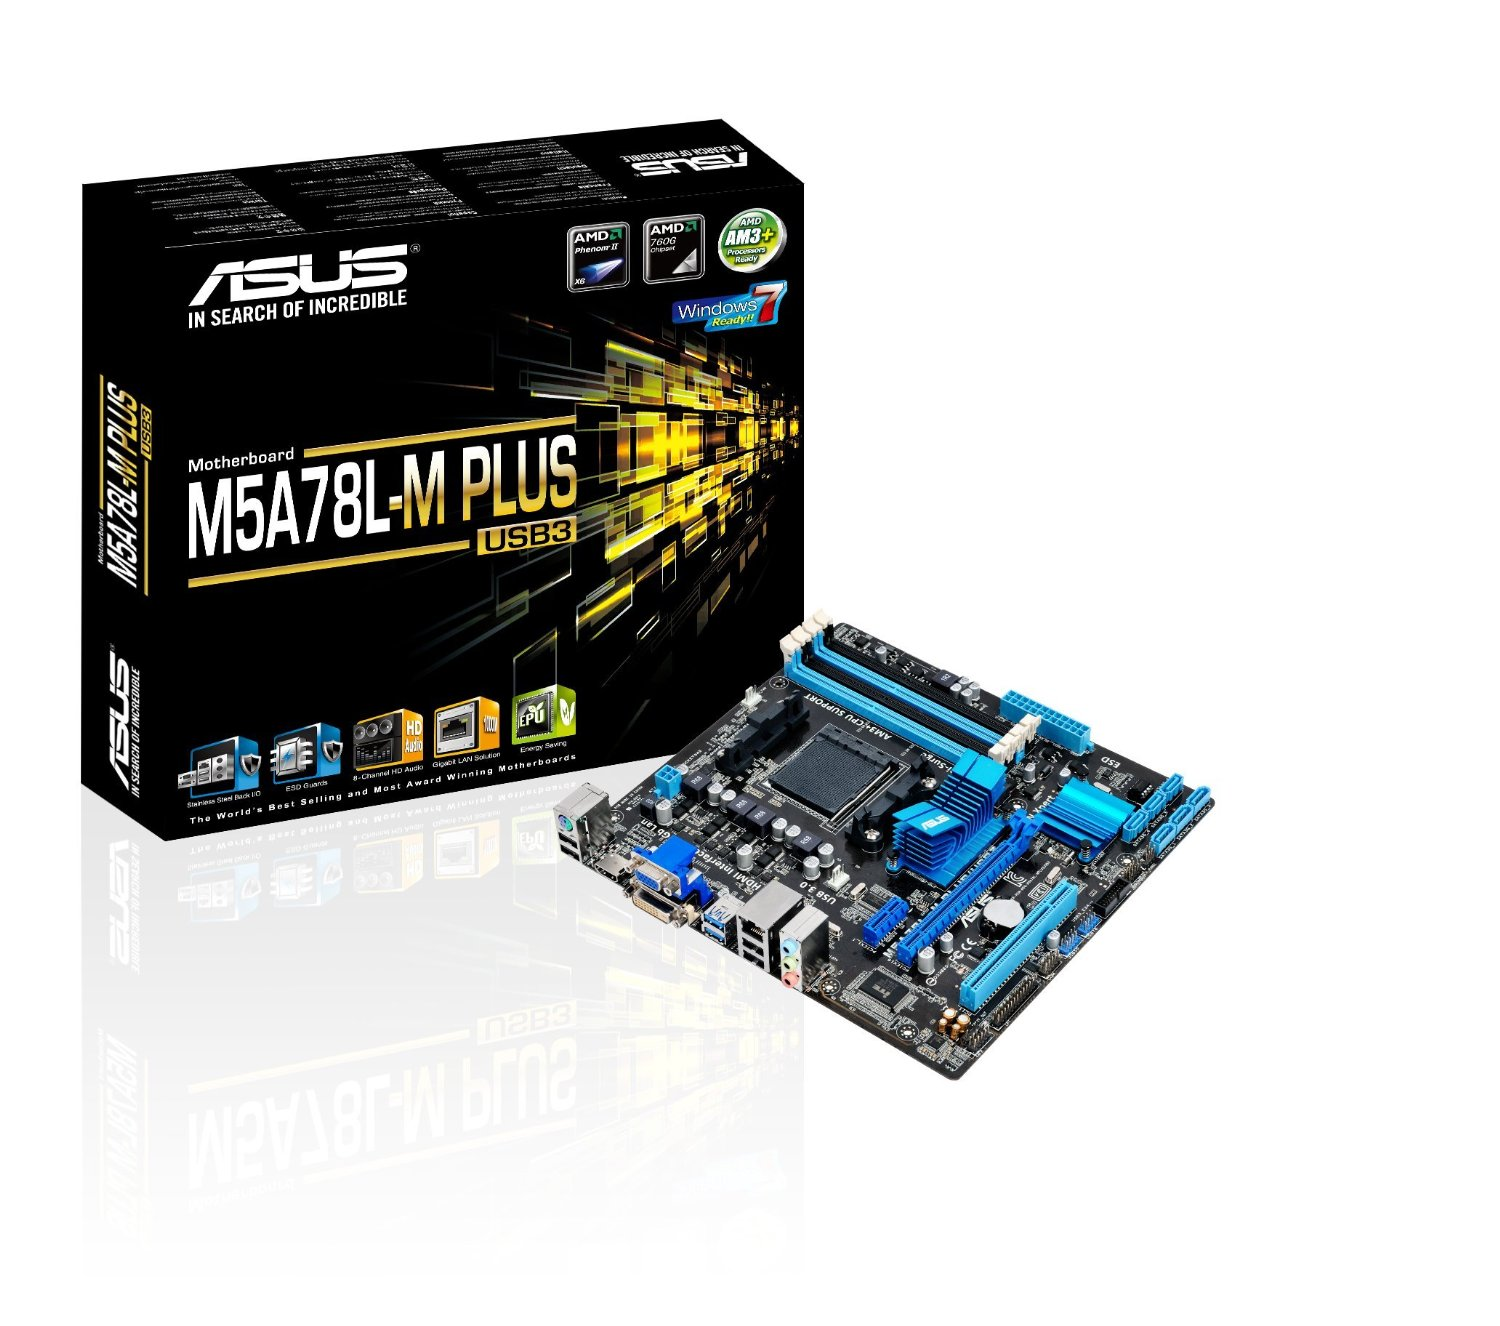 asus m5a78l m plus usb3 am3 ddr3 hdmi 760g microatx motherboard 97 asus m5a78l m plus usb3 am3 ddr3 hdmi 760g microatx motherboard  at bayanpartner.co